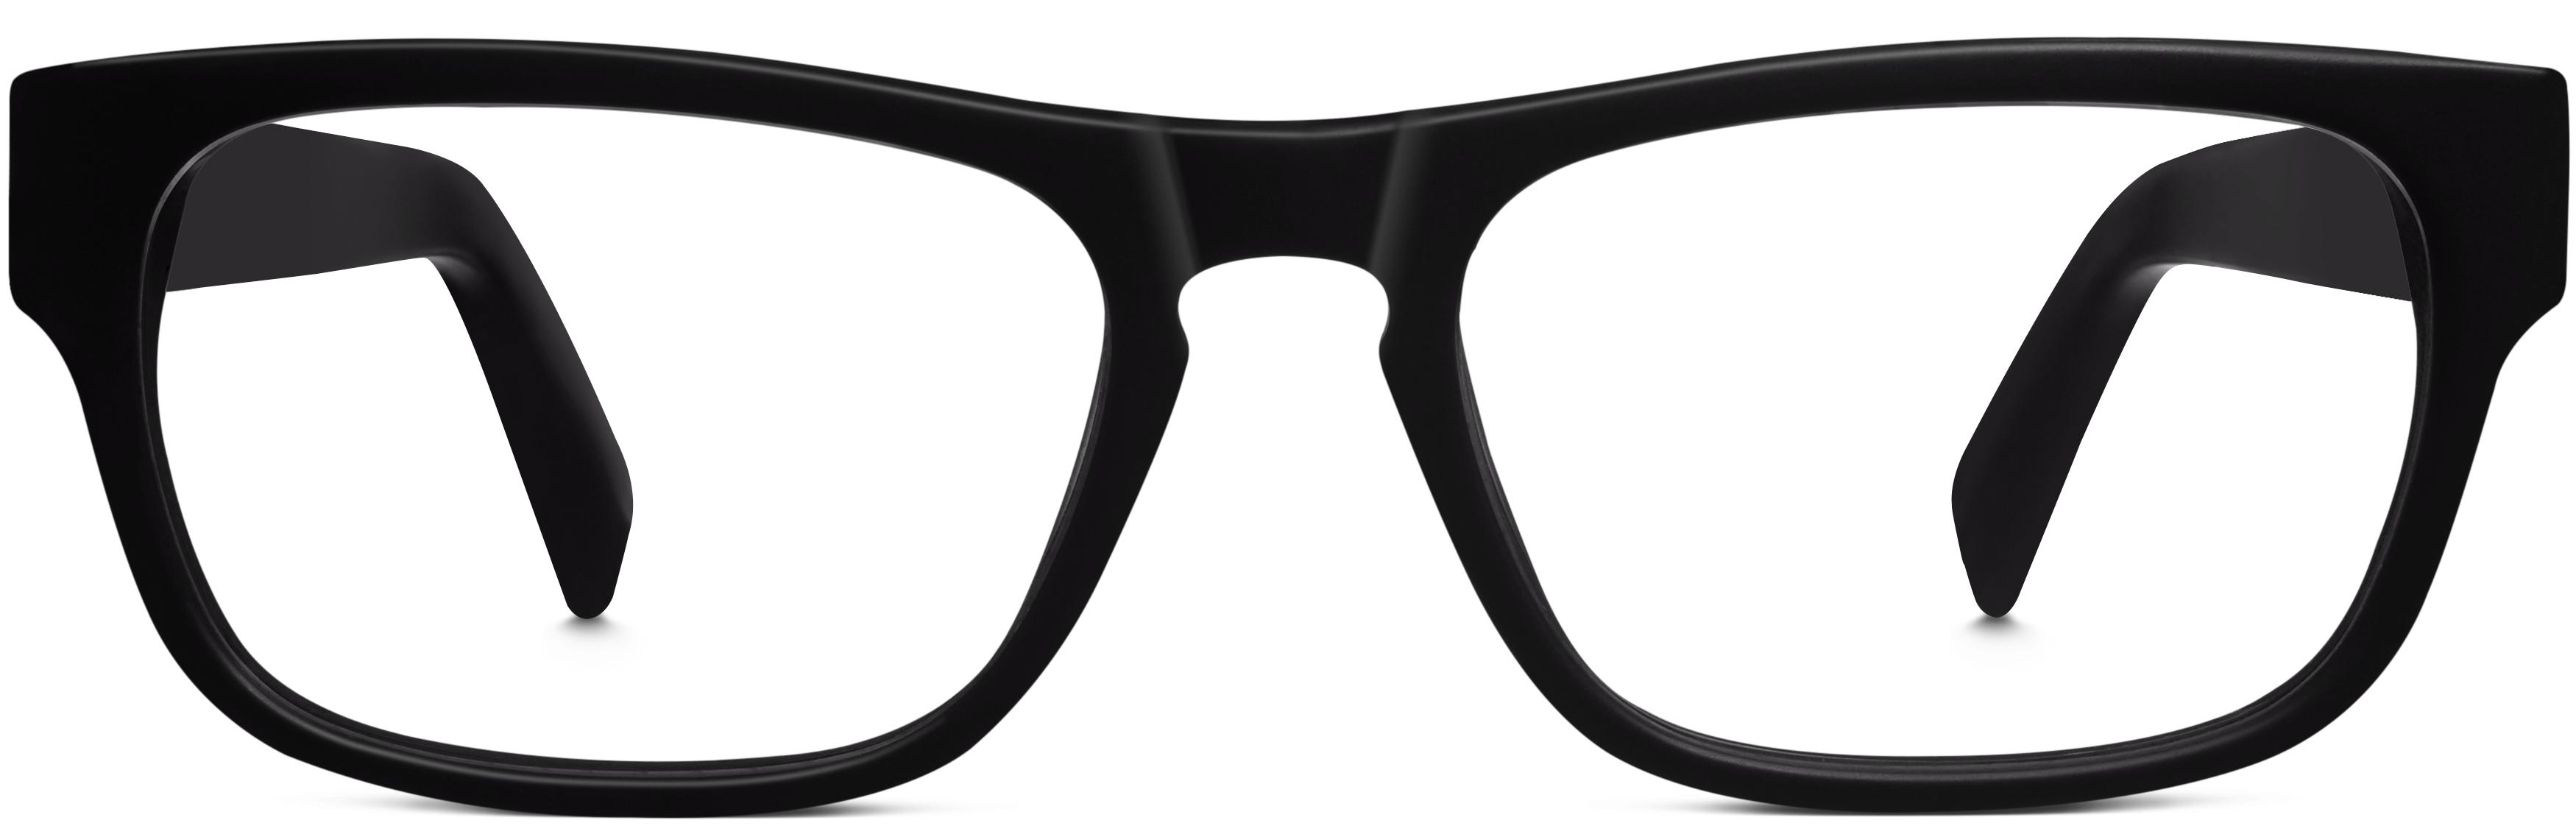 ae3d1081d14 Men s Eyeglasses